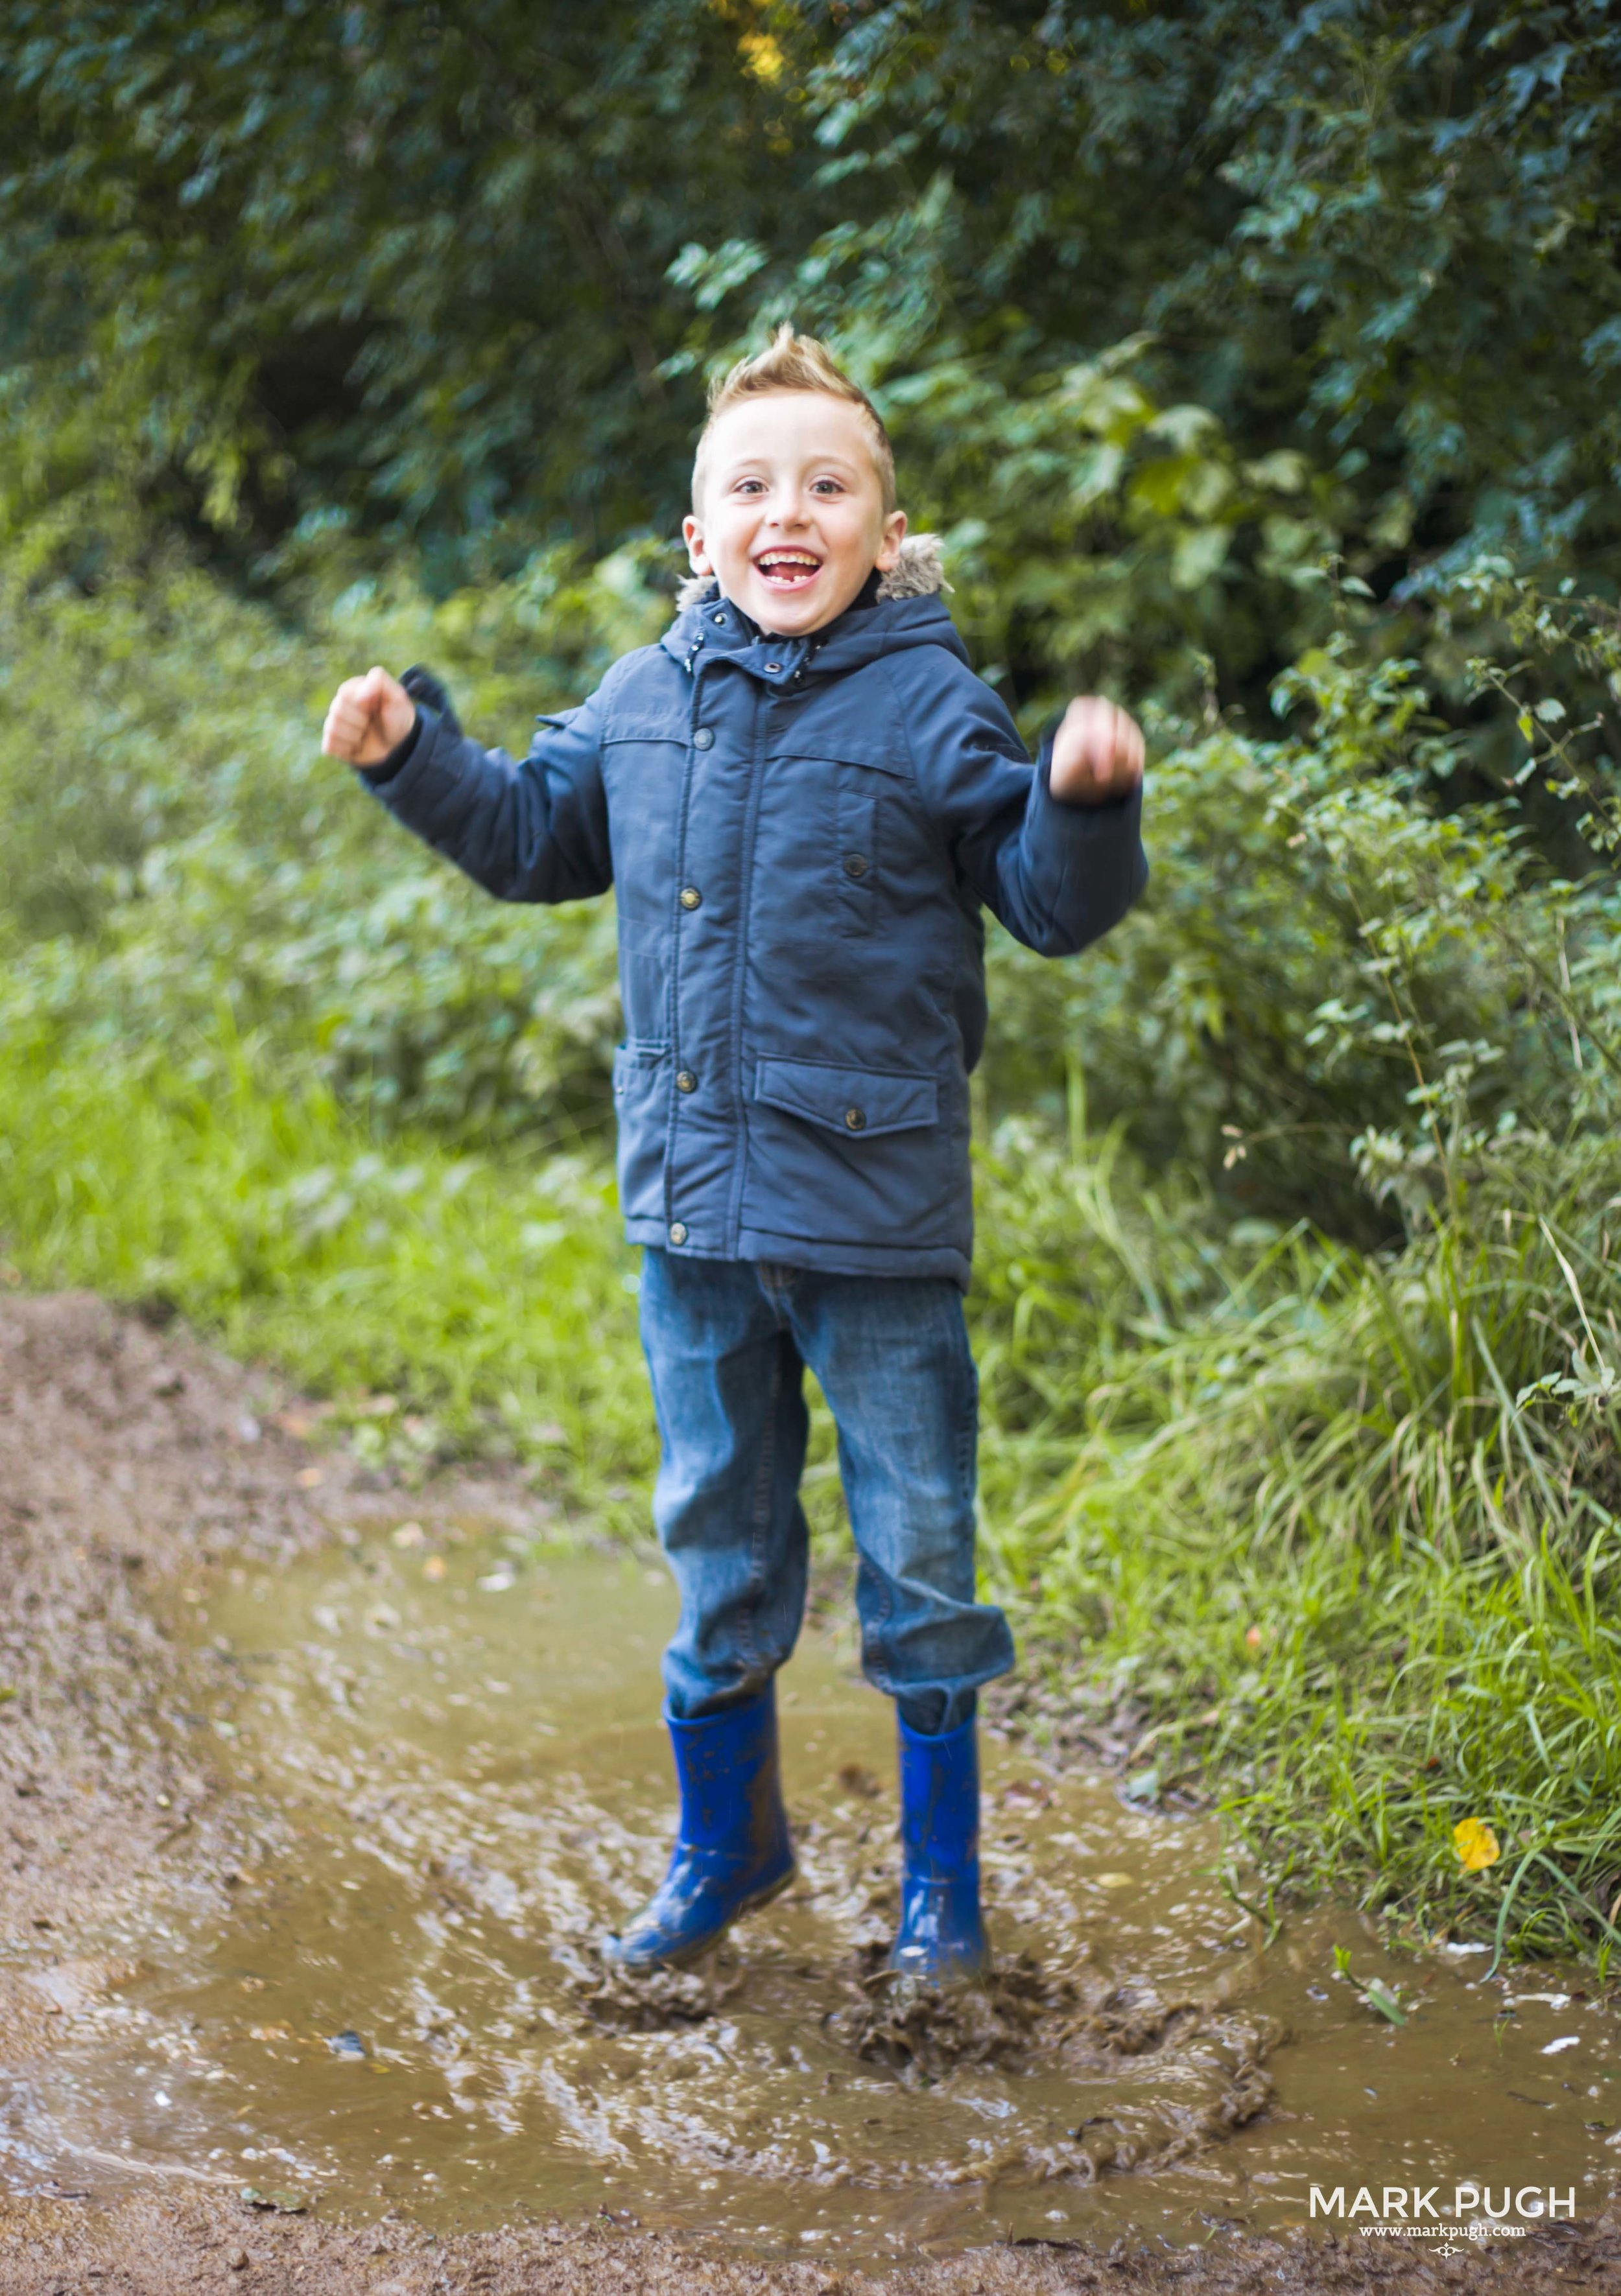 016 - Claire Richard Oliver Dominic and Neave Family photography in the Vale of Belvoir by www.markpugh.com Mark Pugh of www.mpmedia.co.uk 0126.JPG